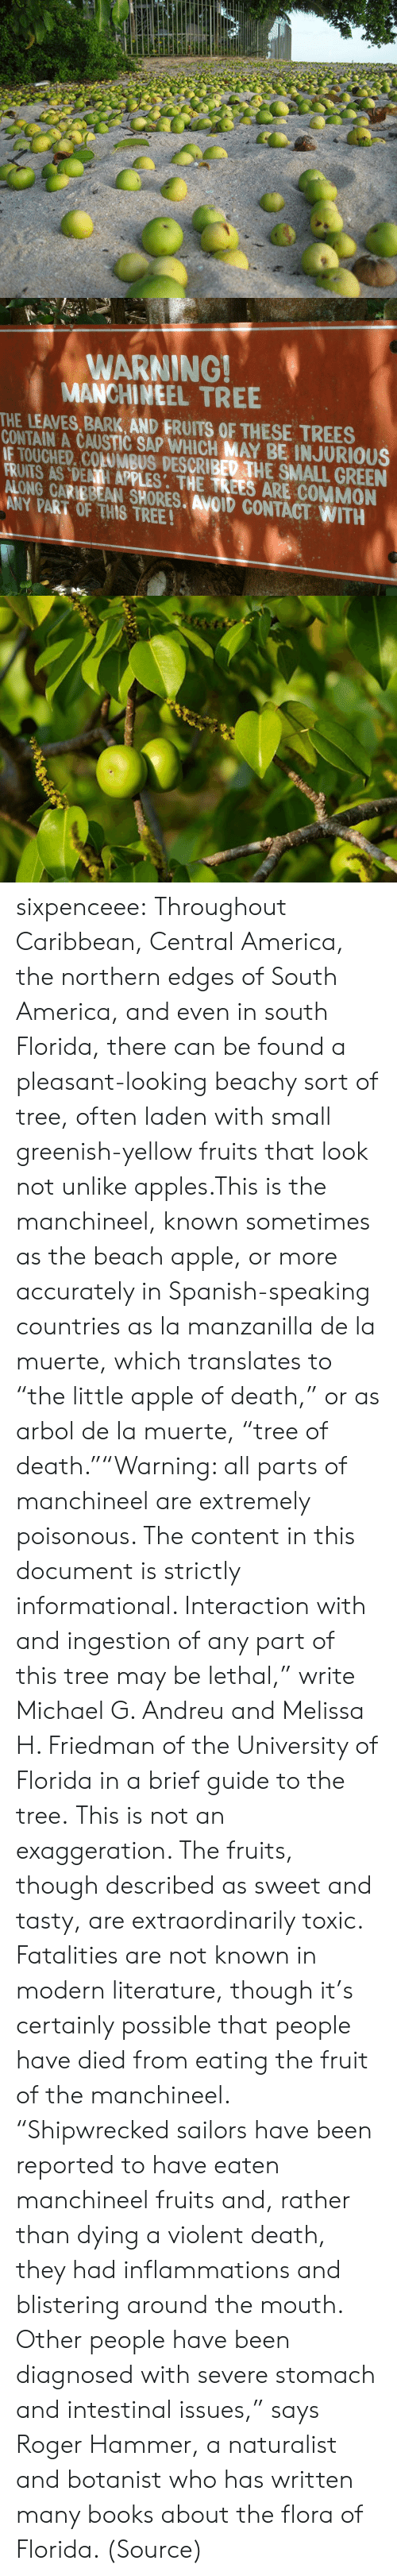 """Inhale The: WARNING!  MANCHINEEL TREE  THE LEAVES, BARK AND FRUITS OF THESE TREES  CONTAIN A CAUSTIC SAP WHICH MAY BE INJURIOUS  IE TOUCHED. COLUMBUS DESCRIBED THE SMALL GREEN  FRIATS AS DENII APPLES: THE TREES ARE COMMON  ALONG CARIBBEAN SHORES. AVOID CONTACT WITH  ANY PART OF THIS TREE! sixpenceee:  Throughout Caribbean, Central America, the northern edges of South America, and even in south Florida, there can be found a pleasant-looking beachy sort of tree, often laden with small greenish-yellow fruits that look not unlike apples.This is the manchineel, known sometimes as the beach apple, or more accurately in Spanish-speaking countries as la manzanilla de la muerte, which translates to """"the little apple of death,"""" or as arbol de la muerte, """"tree of death.""""""""Warning: all parts of manchineel are extremely poisonous. The content in this document is strictly informational. Interaction with and ingestion of any part of this tree may be lethal,"""" write Michael G. Andreu and Melissa H. Friedman of the University of Florida in a brief guide to the tree.This is not an exaggeration. The fruits, though described as sweet and tasty, are extraordinarily toxic. Fatalities are not known in modern literature, though it's certainly possible that people have died from eating the fruit of the manchineel. """"Shipwrecked sailors have been reported to have eaten manchineel fruits and, rather than dying a violent death, they had inflammations and blistering around the mouth. Other people have been diagnosed with severe stomach and intestinal issues,"""" says Roger Hammer, a naturalist and botanist who has written many books about the flora of Florida. (Source)"""